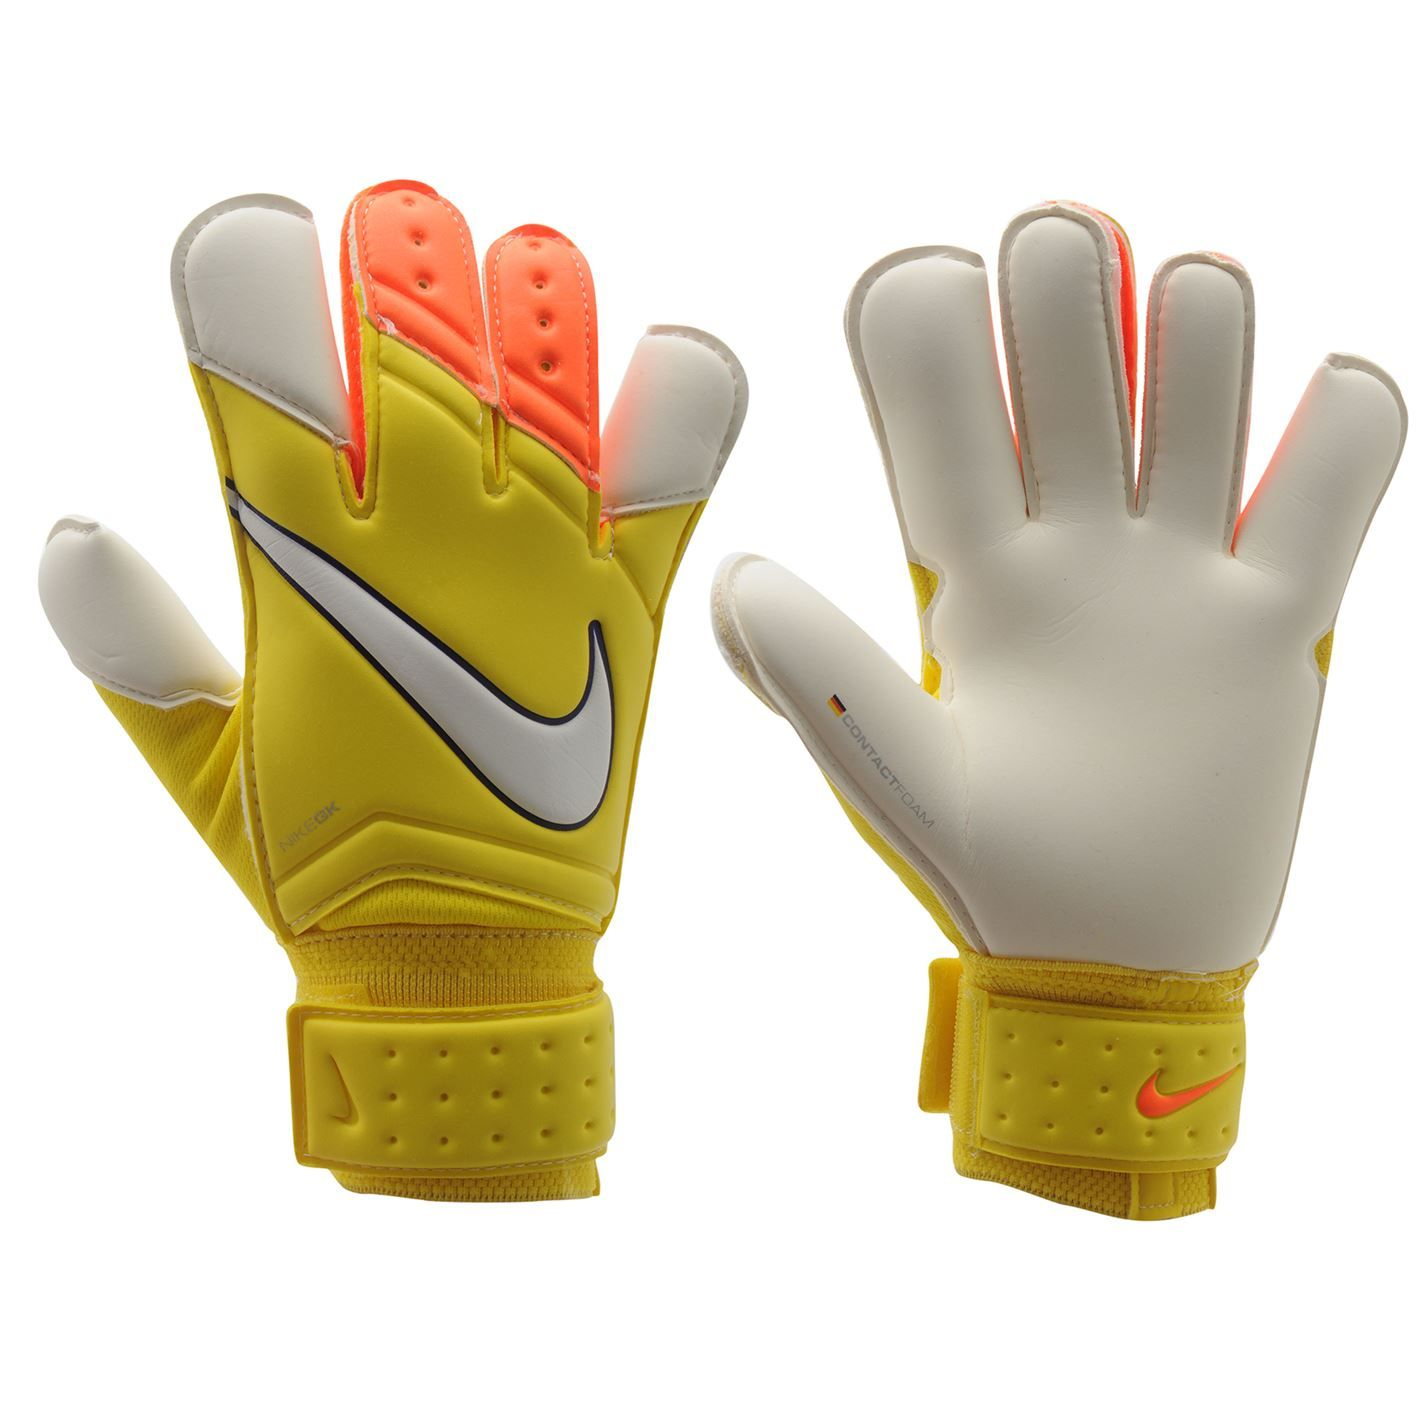 Nike | Nike Vapor Grip Goalkeeper Gloves Mens | Mens Goal Keeper Gloves